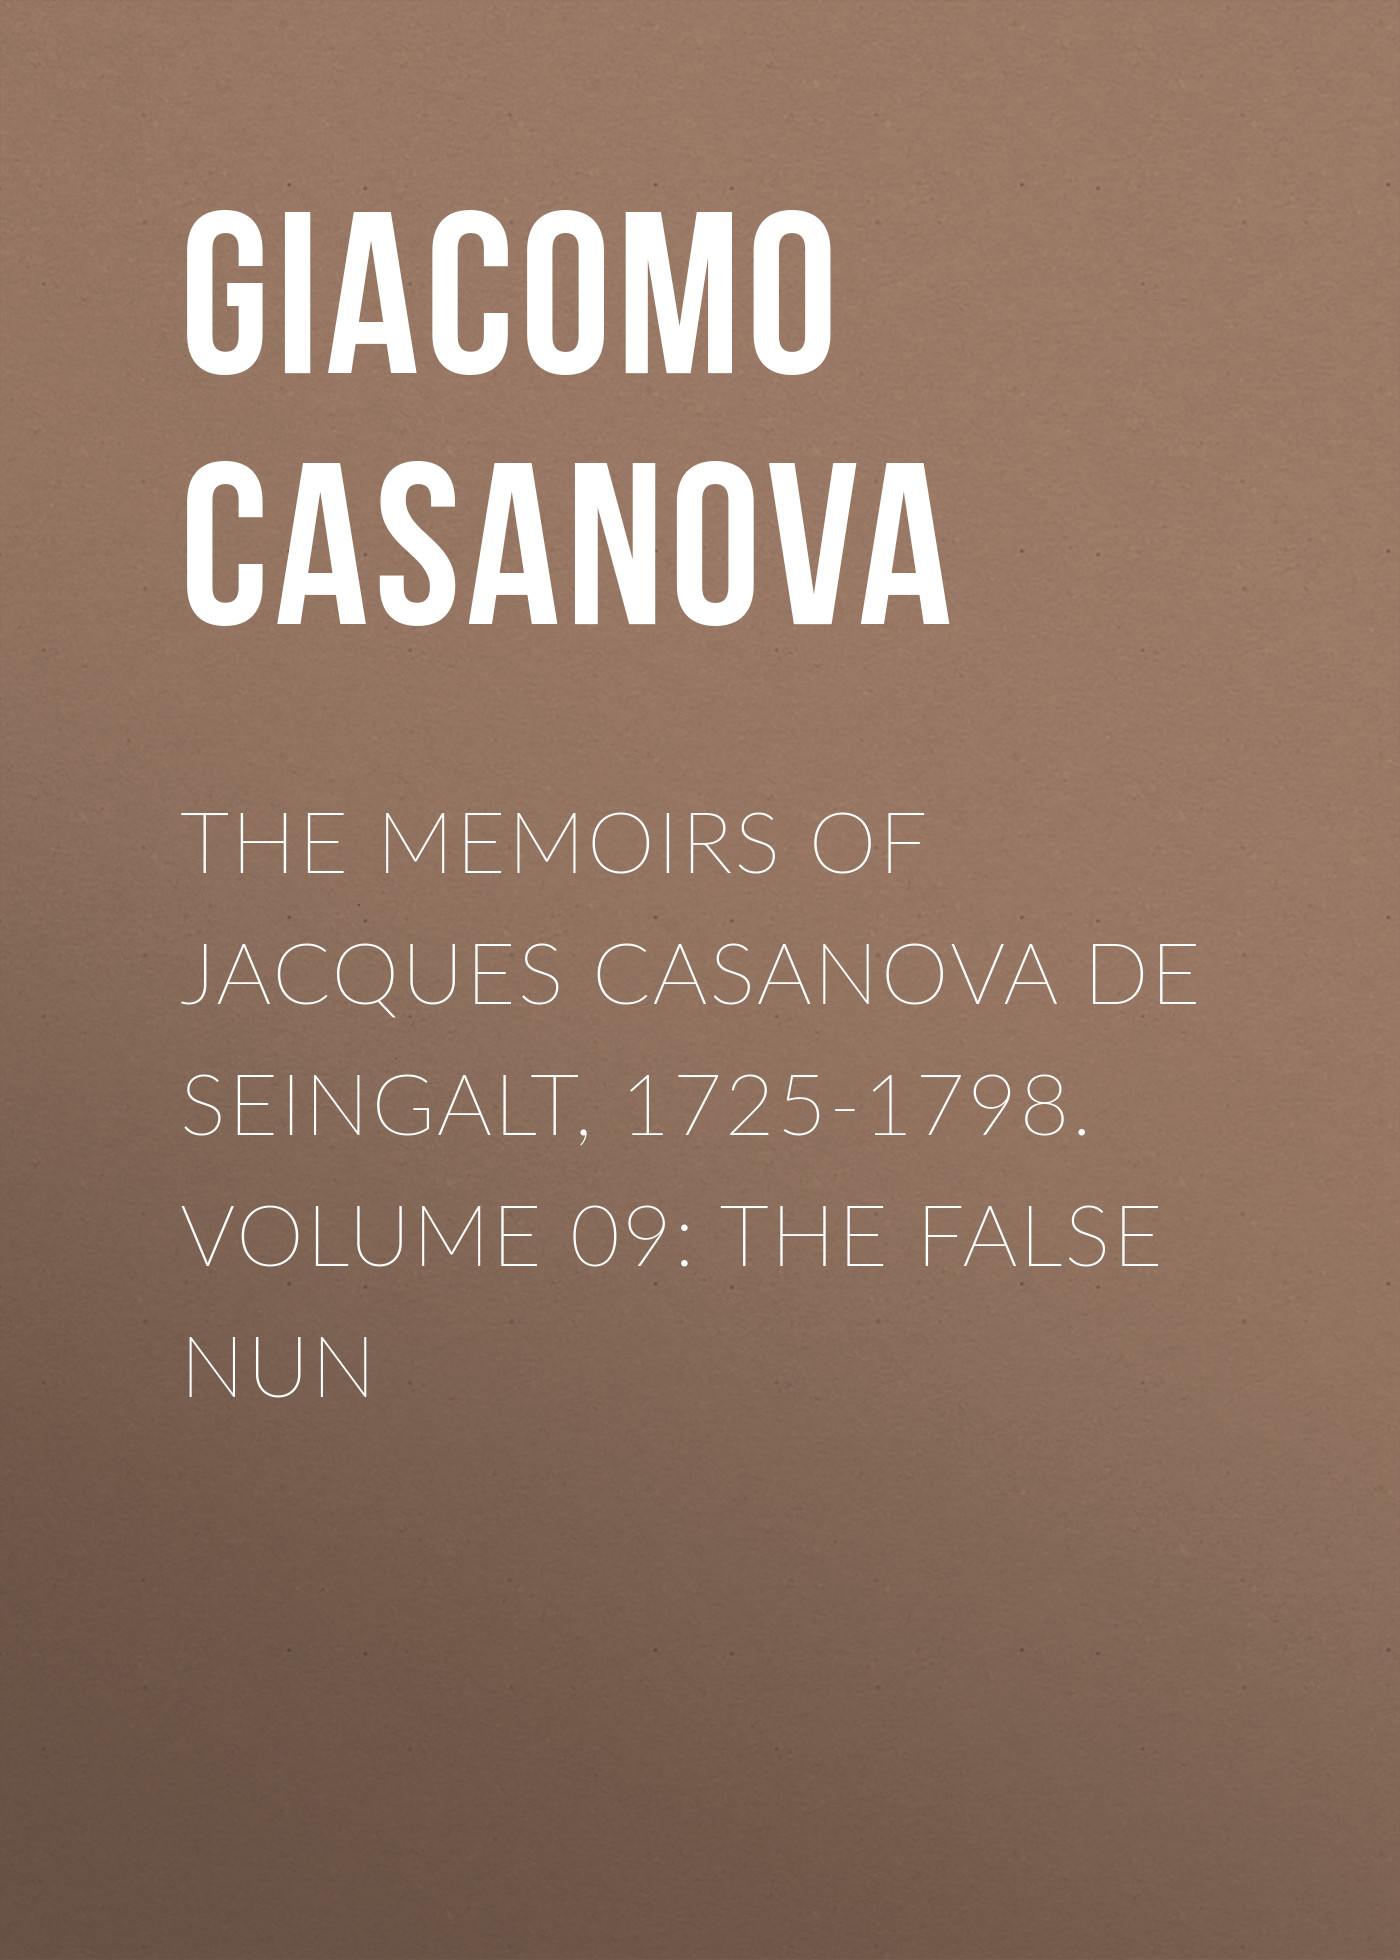 Giacomo Casanova The Memoirs of Jacques Casanova de Seingalt, 1725-1798. Volume 09: the False Nun giacomo casanova the memoirs of jacques casanova de seingalt 1725 1798 volume 29 florence to trieste